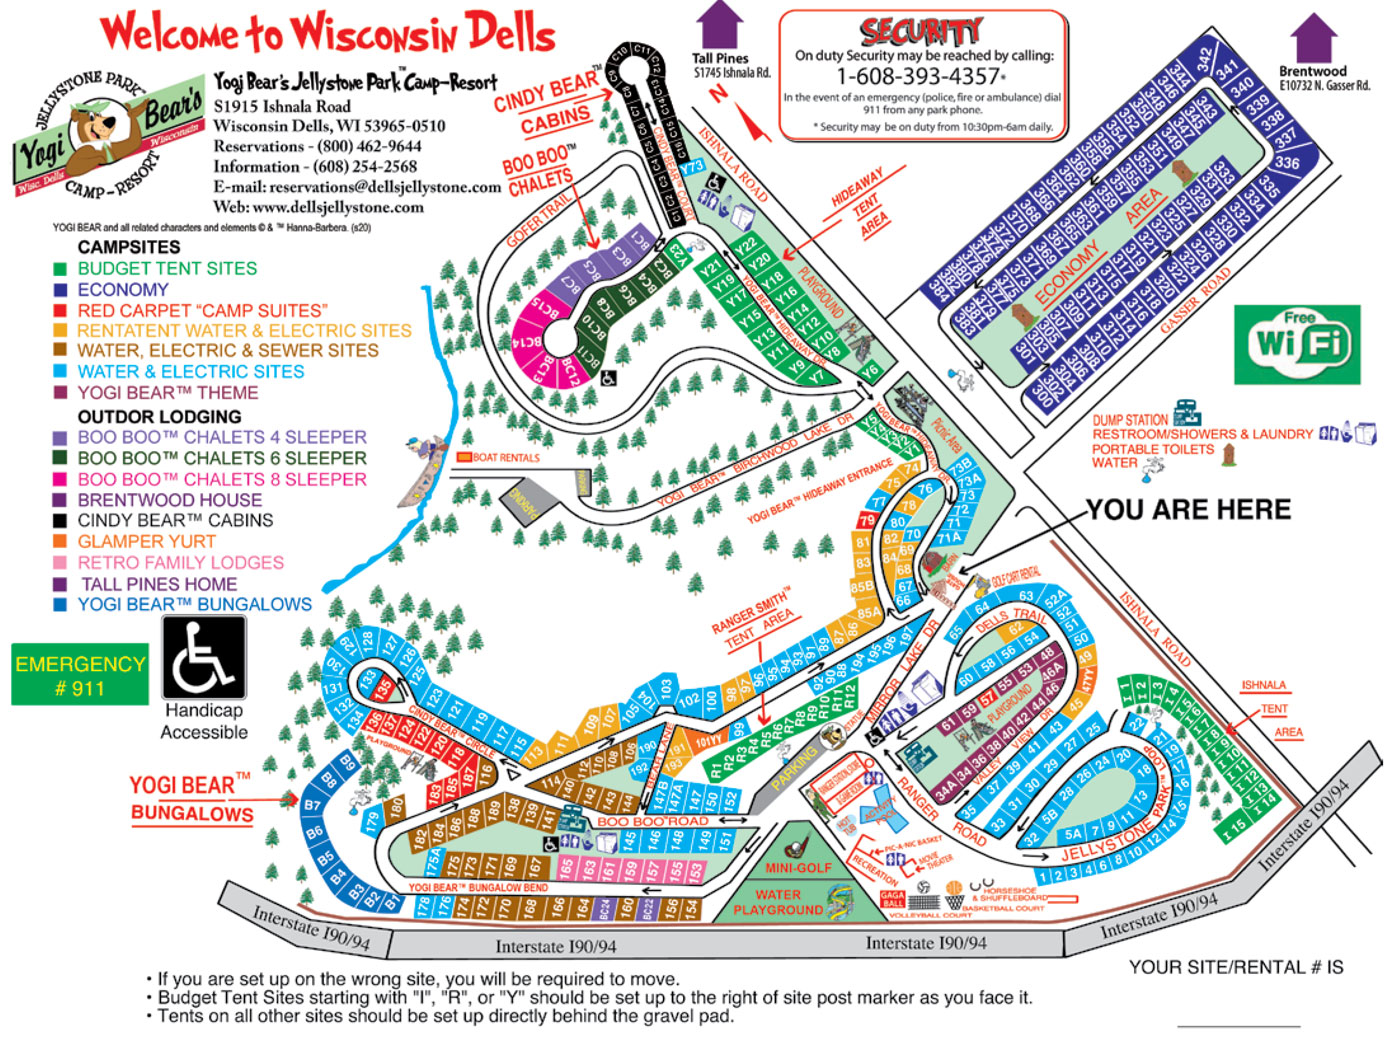 Click here to see larger Resort Map